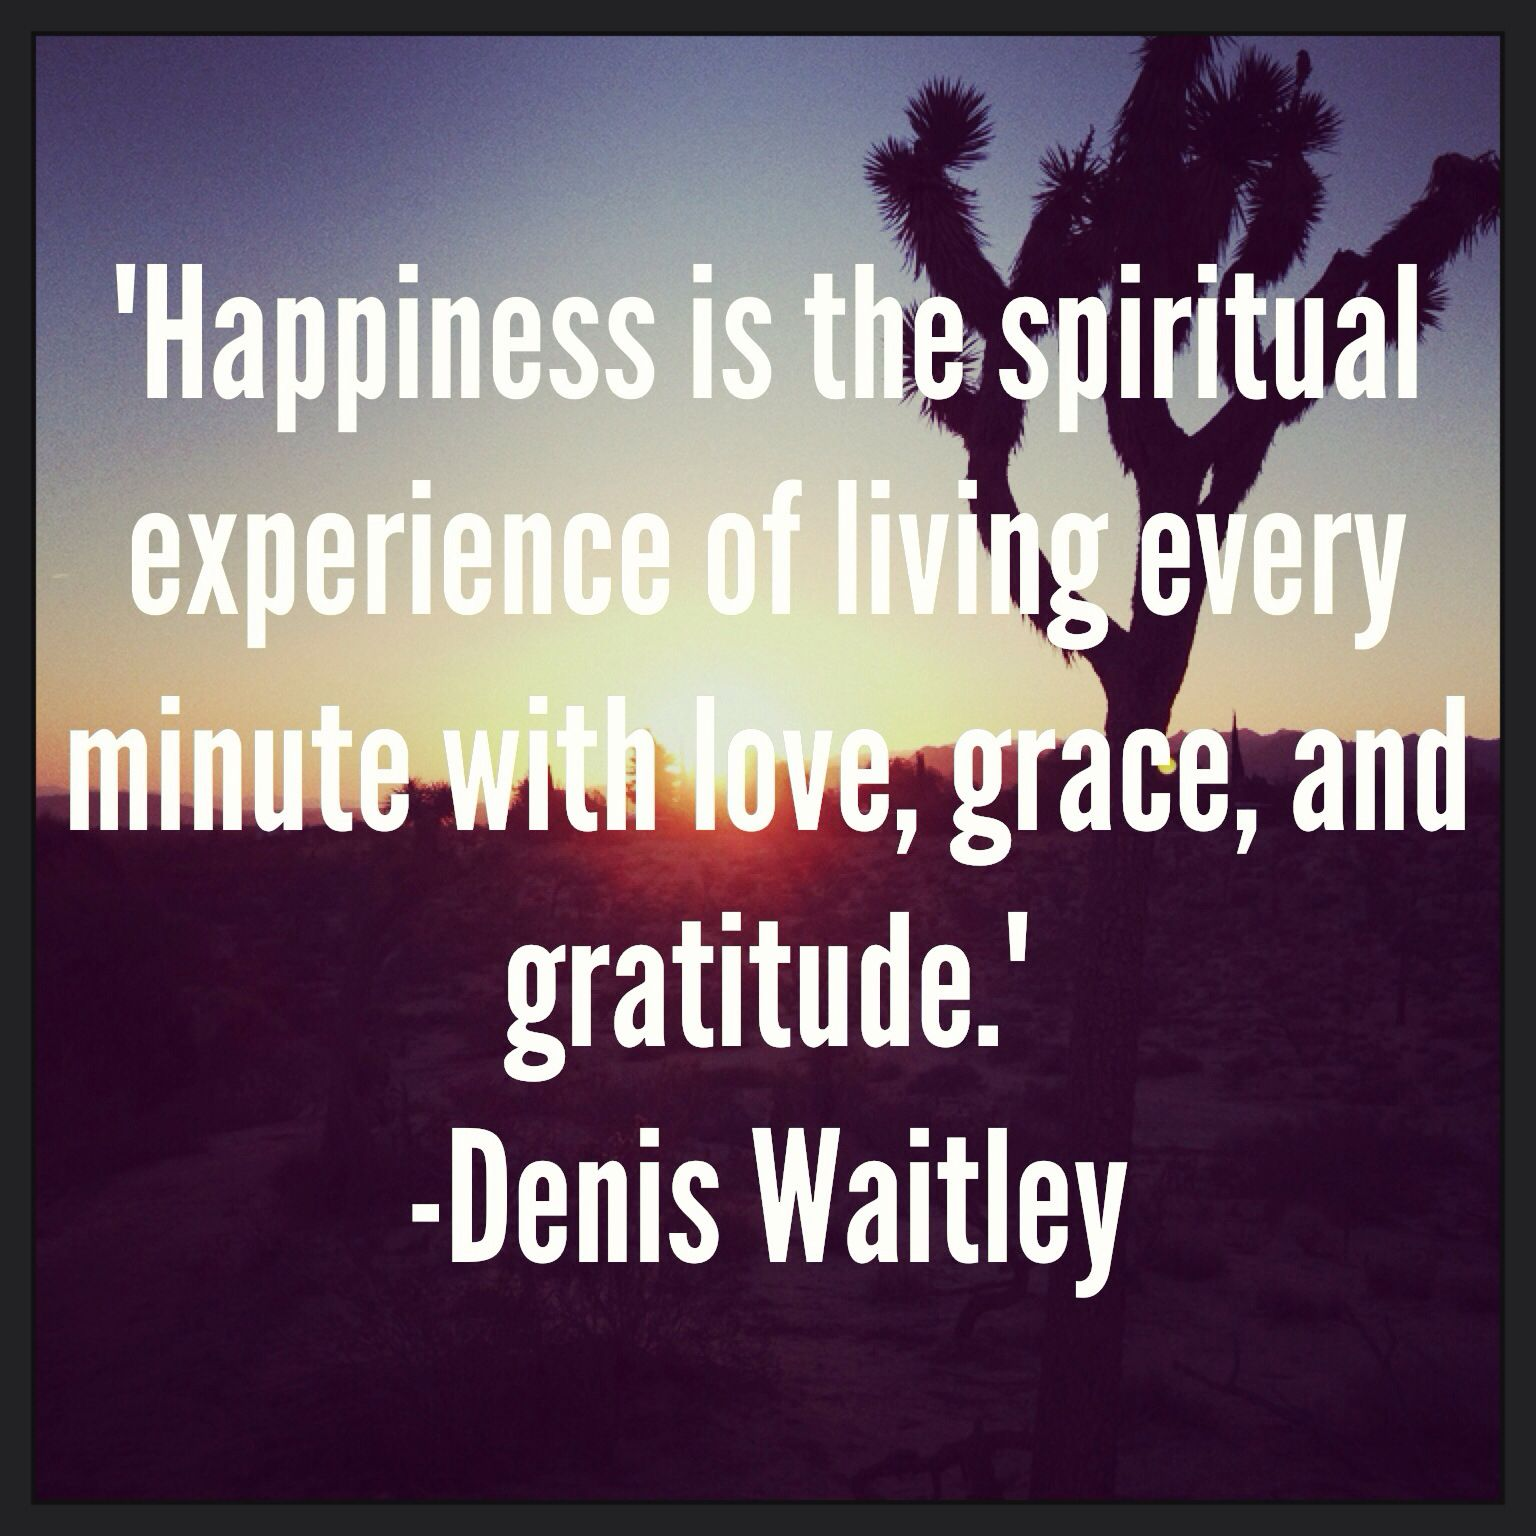 Spiritual Quotes On Love Happiness Spiritual Spirituality Love Grace Gratitude Wisdom